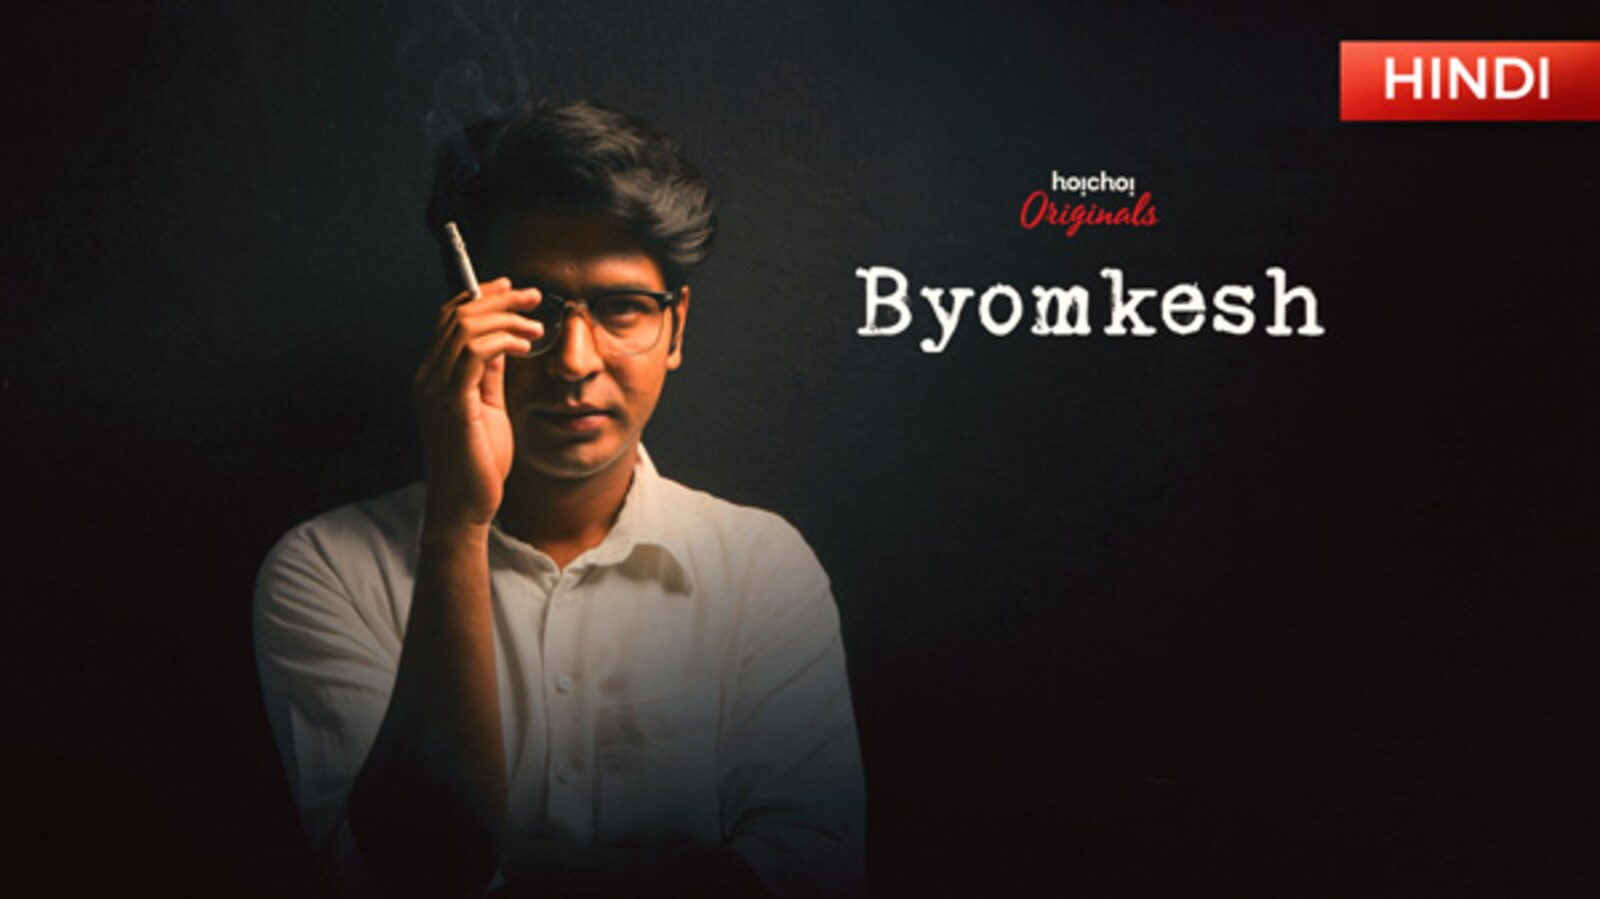 Byomkesh (Hindi) | Hoichoi - Movies | Originals